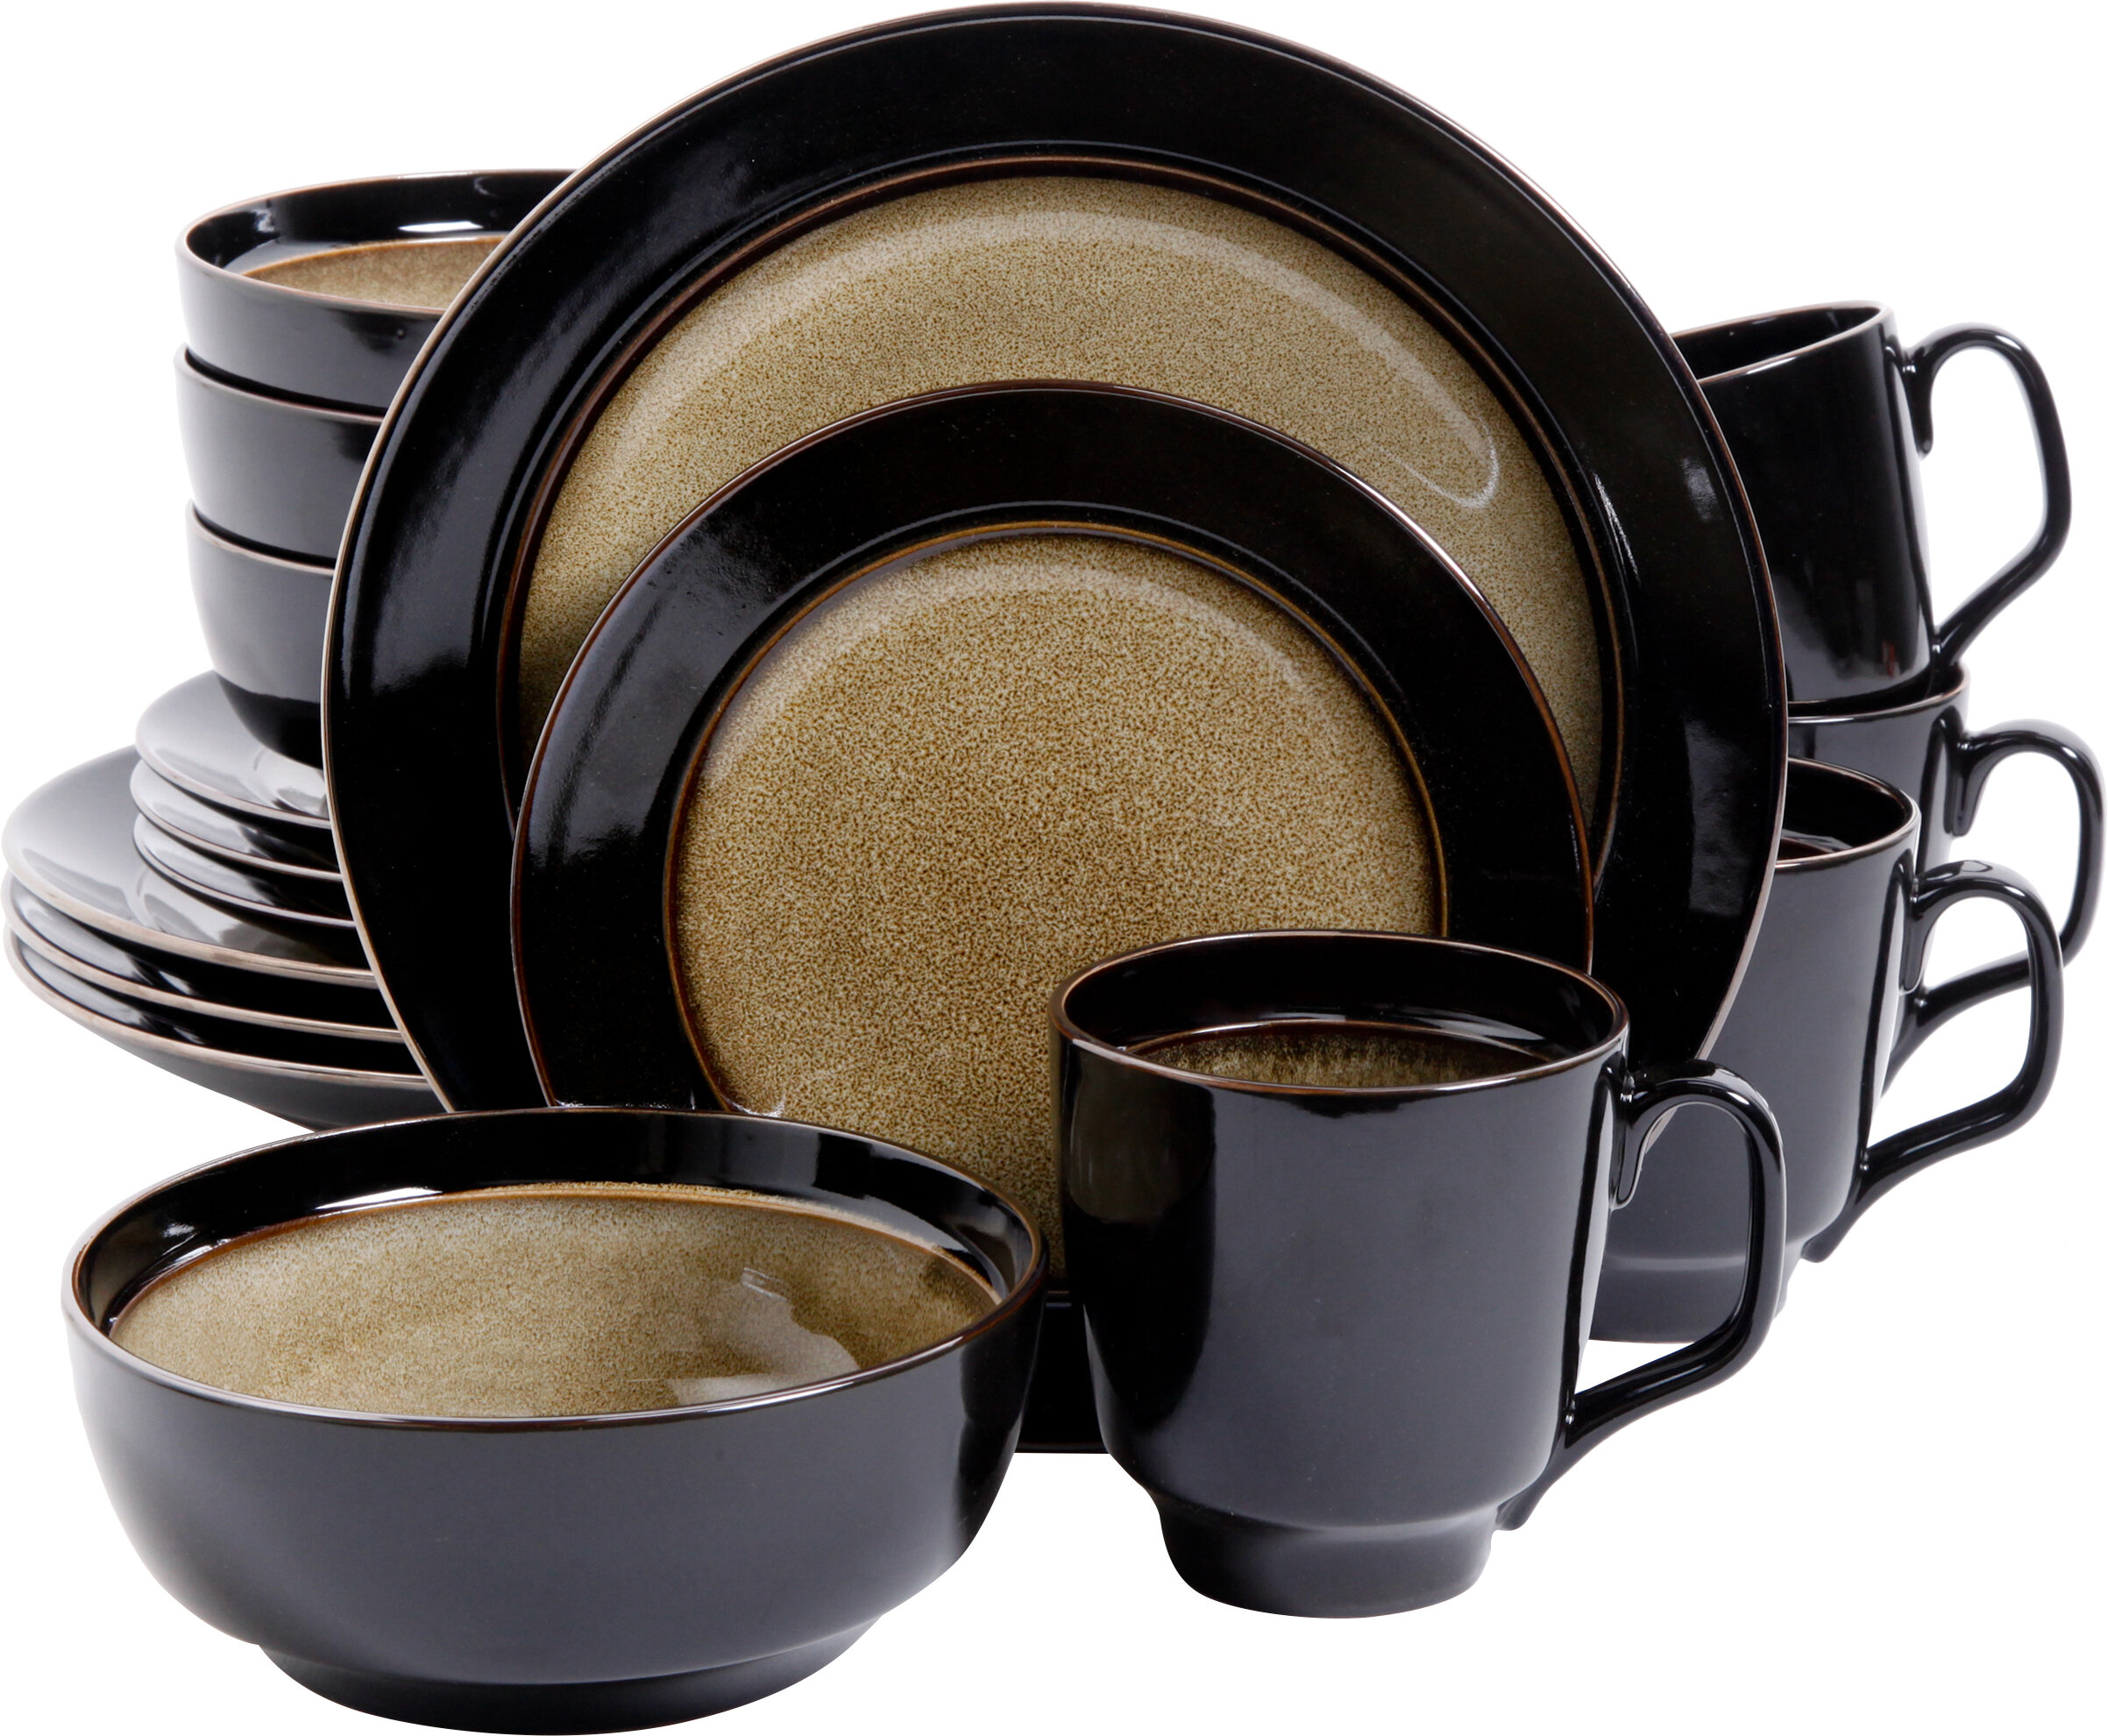 Mint Pantry Stoneware 16 Piece Dinnerware Set Service for 4 u0026 Reviews | Wayfair  sc 1 st  Wayfair & Mint Pantry Stoneware 16 Piece Dinnerware Set Service for 4 ...